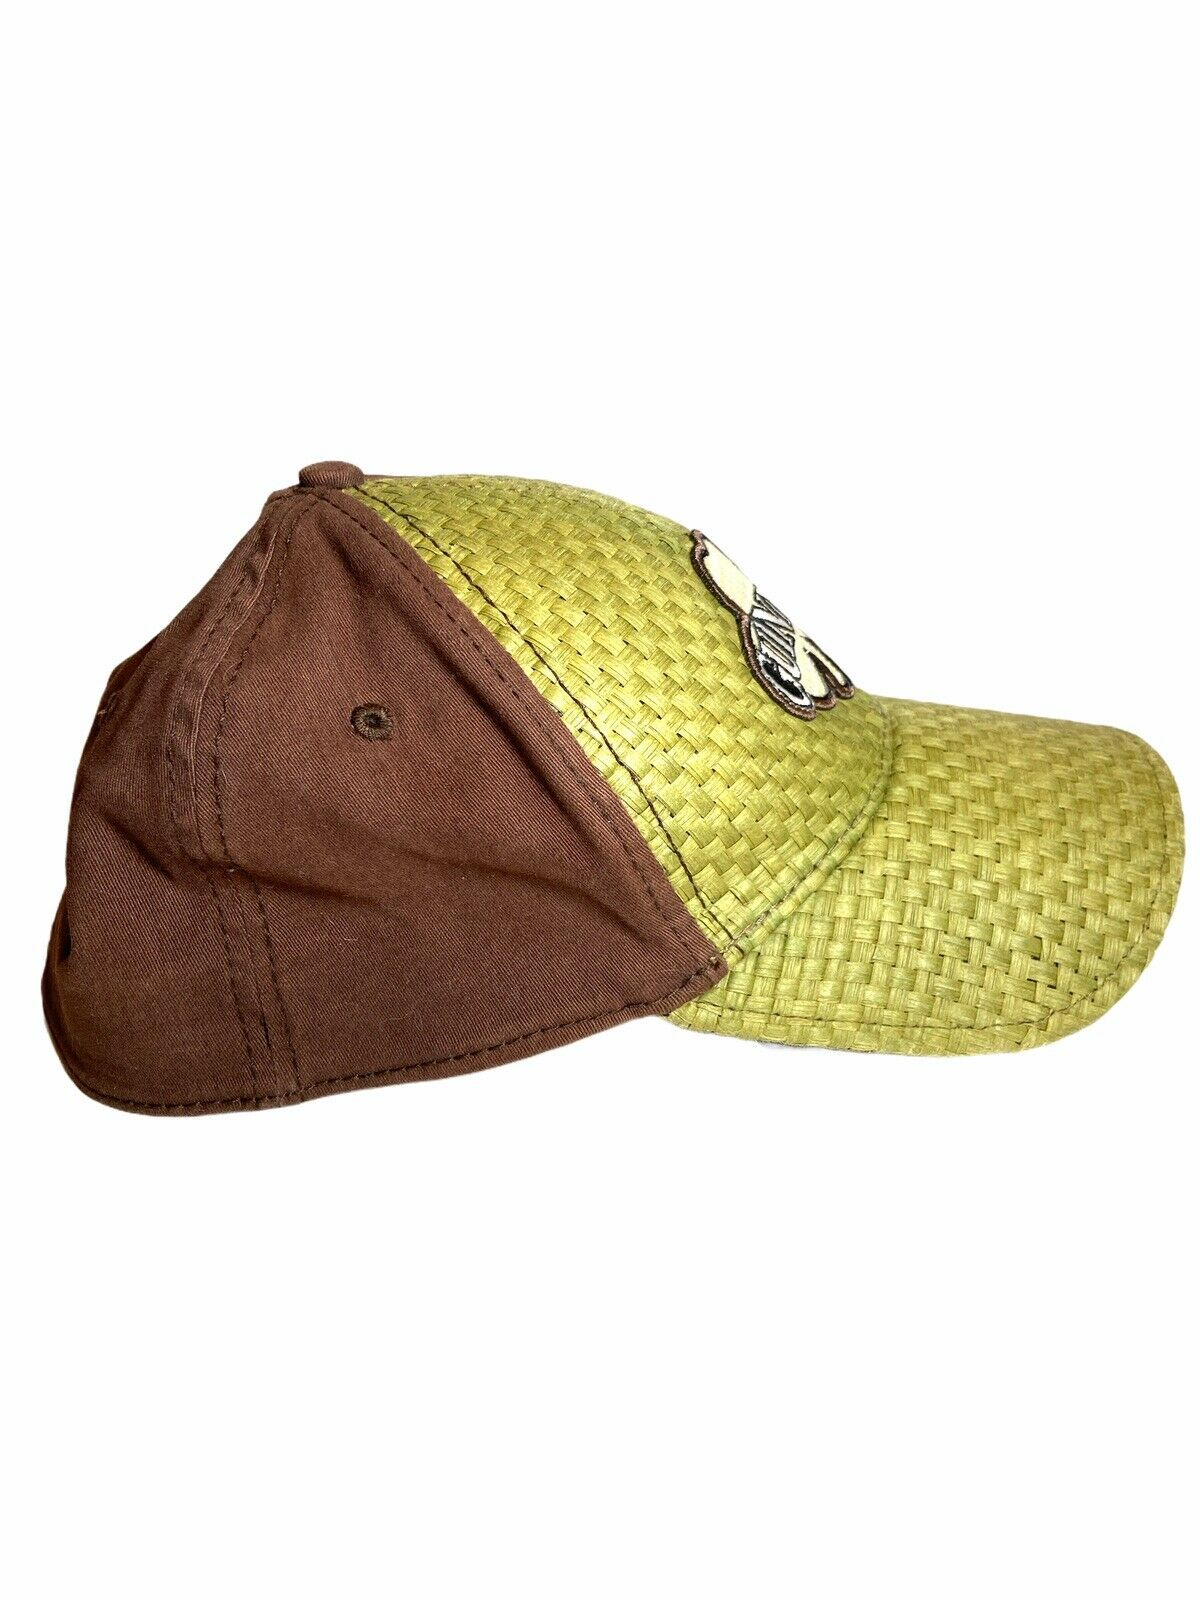 Guinness Beer Woven Straw Cap Hat OS - image 2